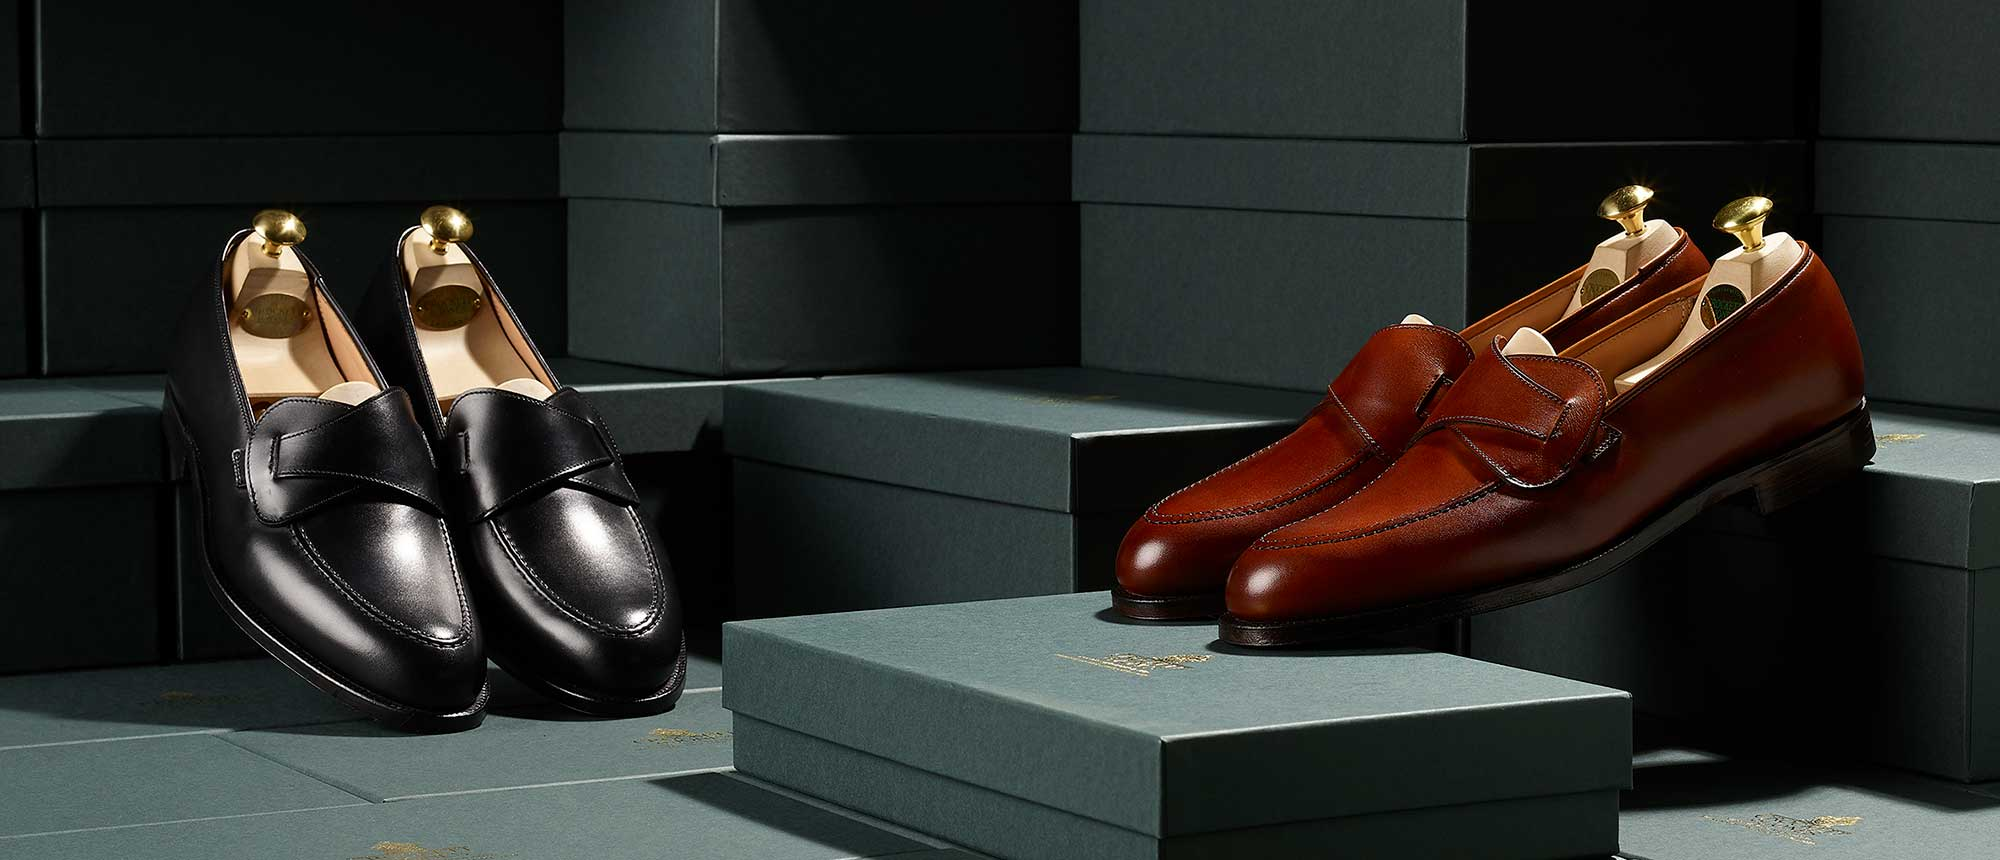 Crockett & Jones - SS20 Details... Selby